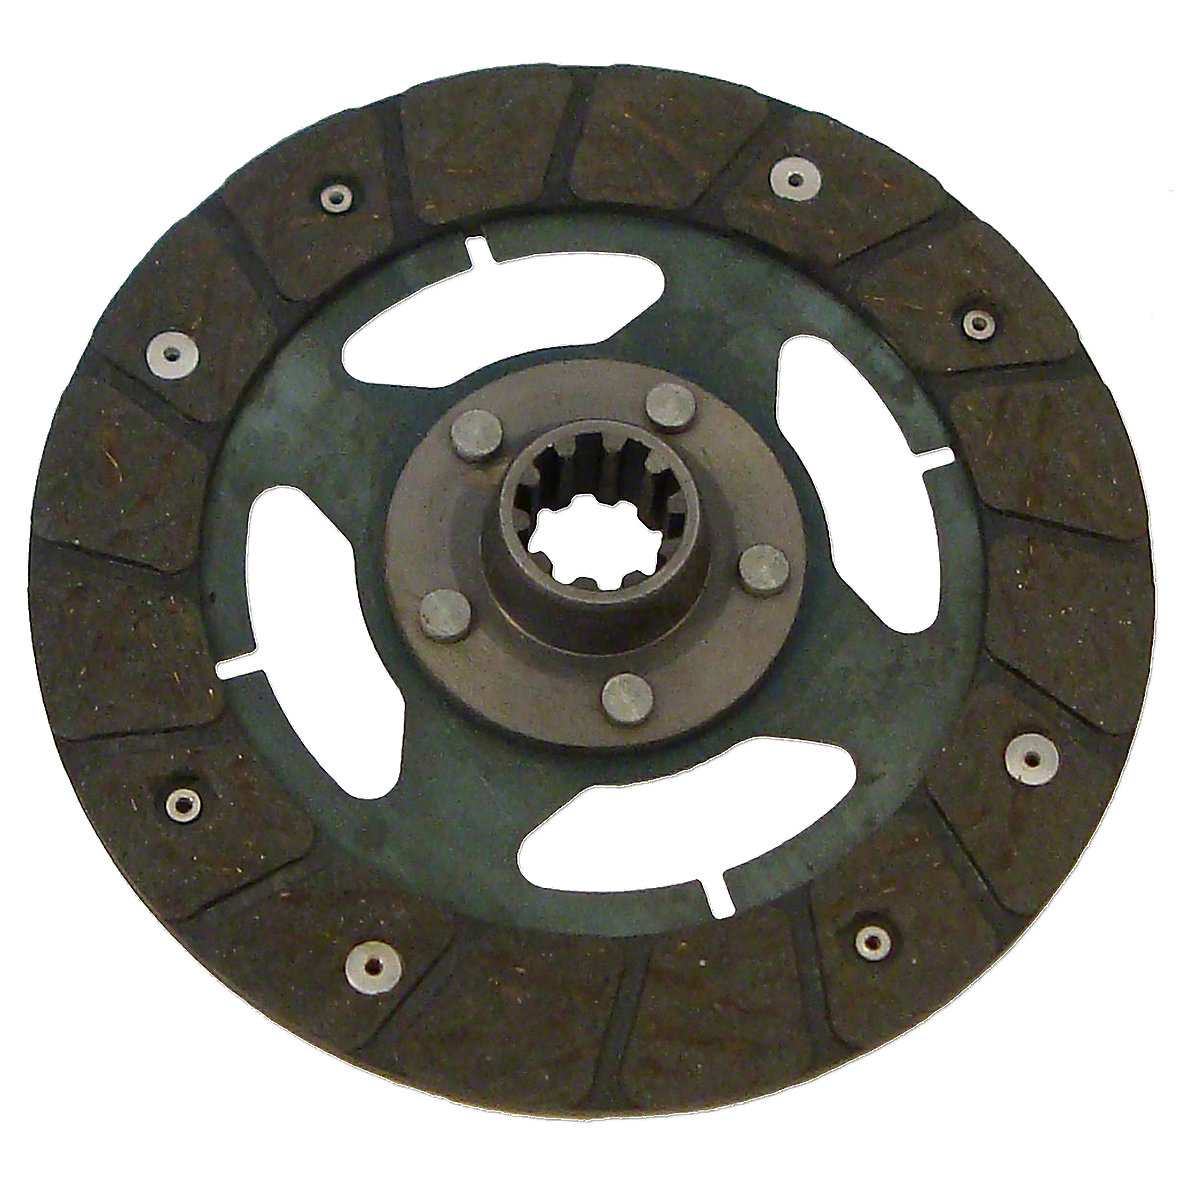 New Clutch Disc For Allis Chalmers: G.